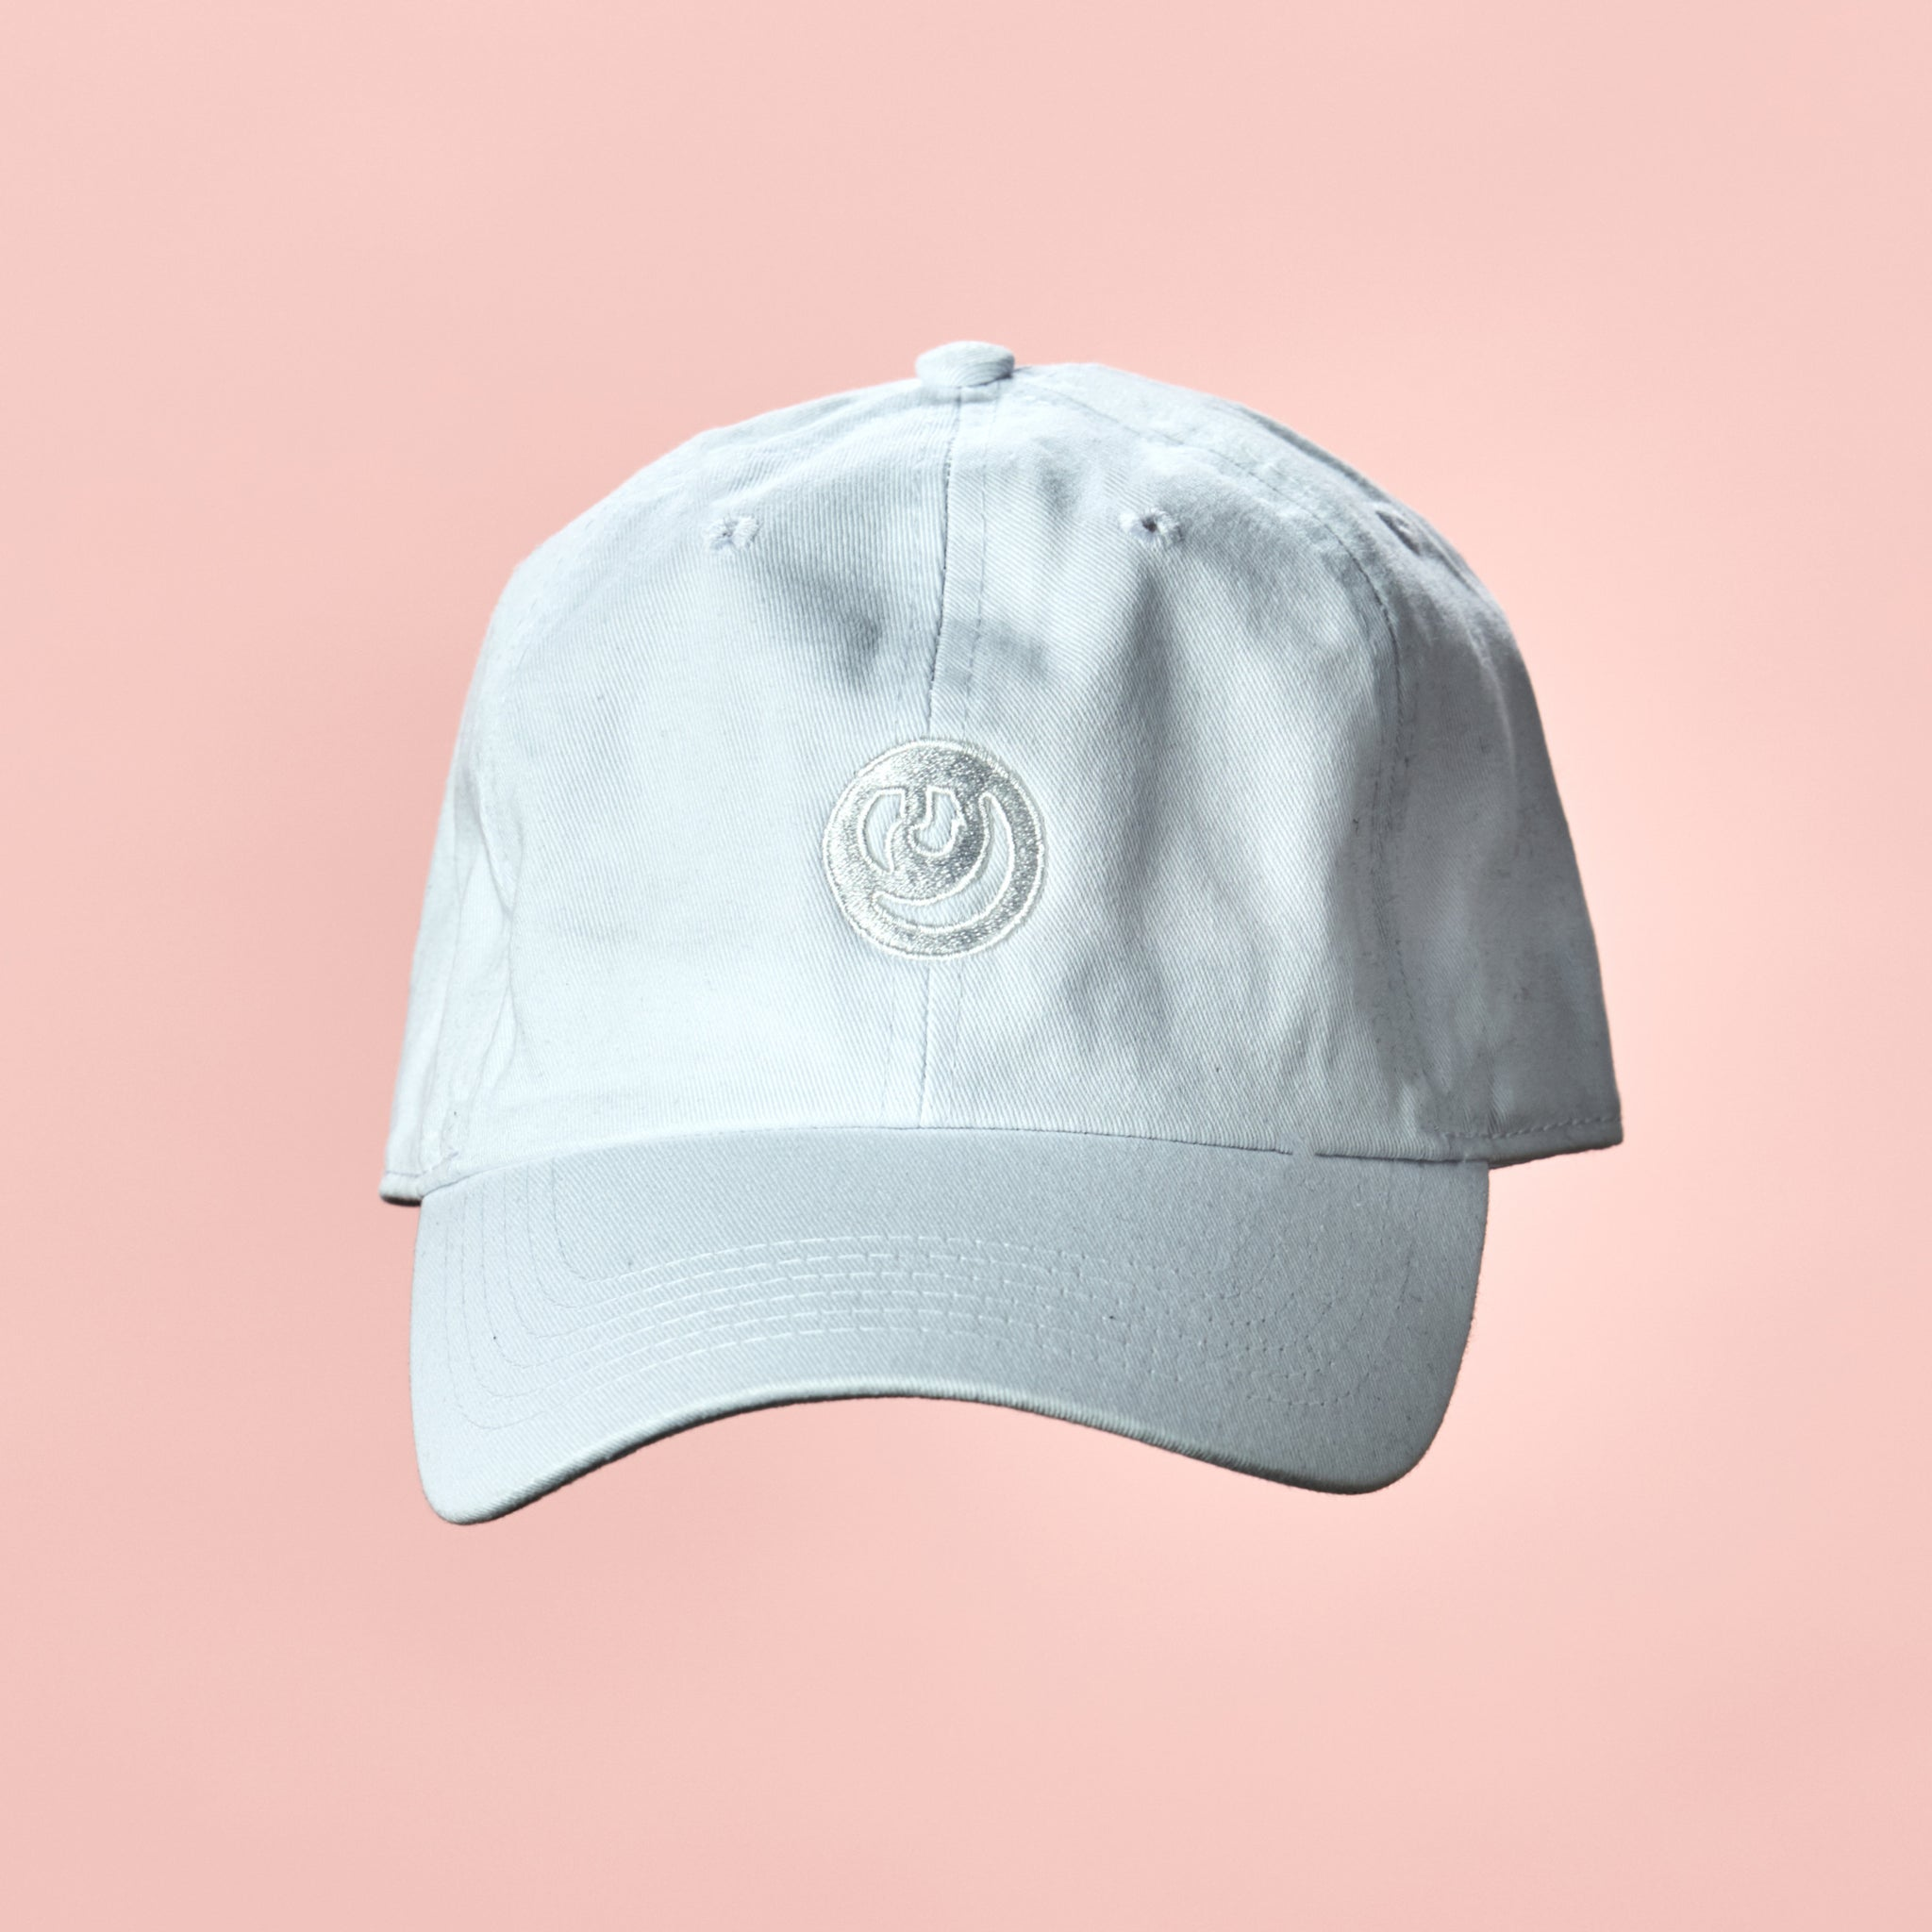 Sgnarly Hat - White